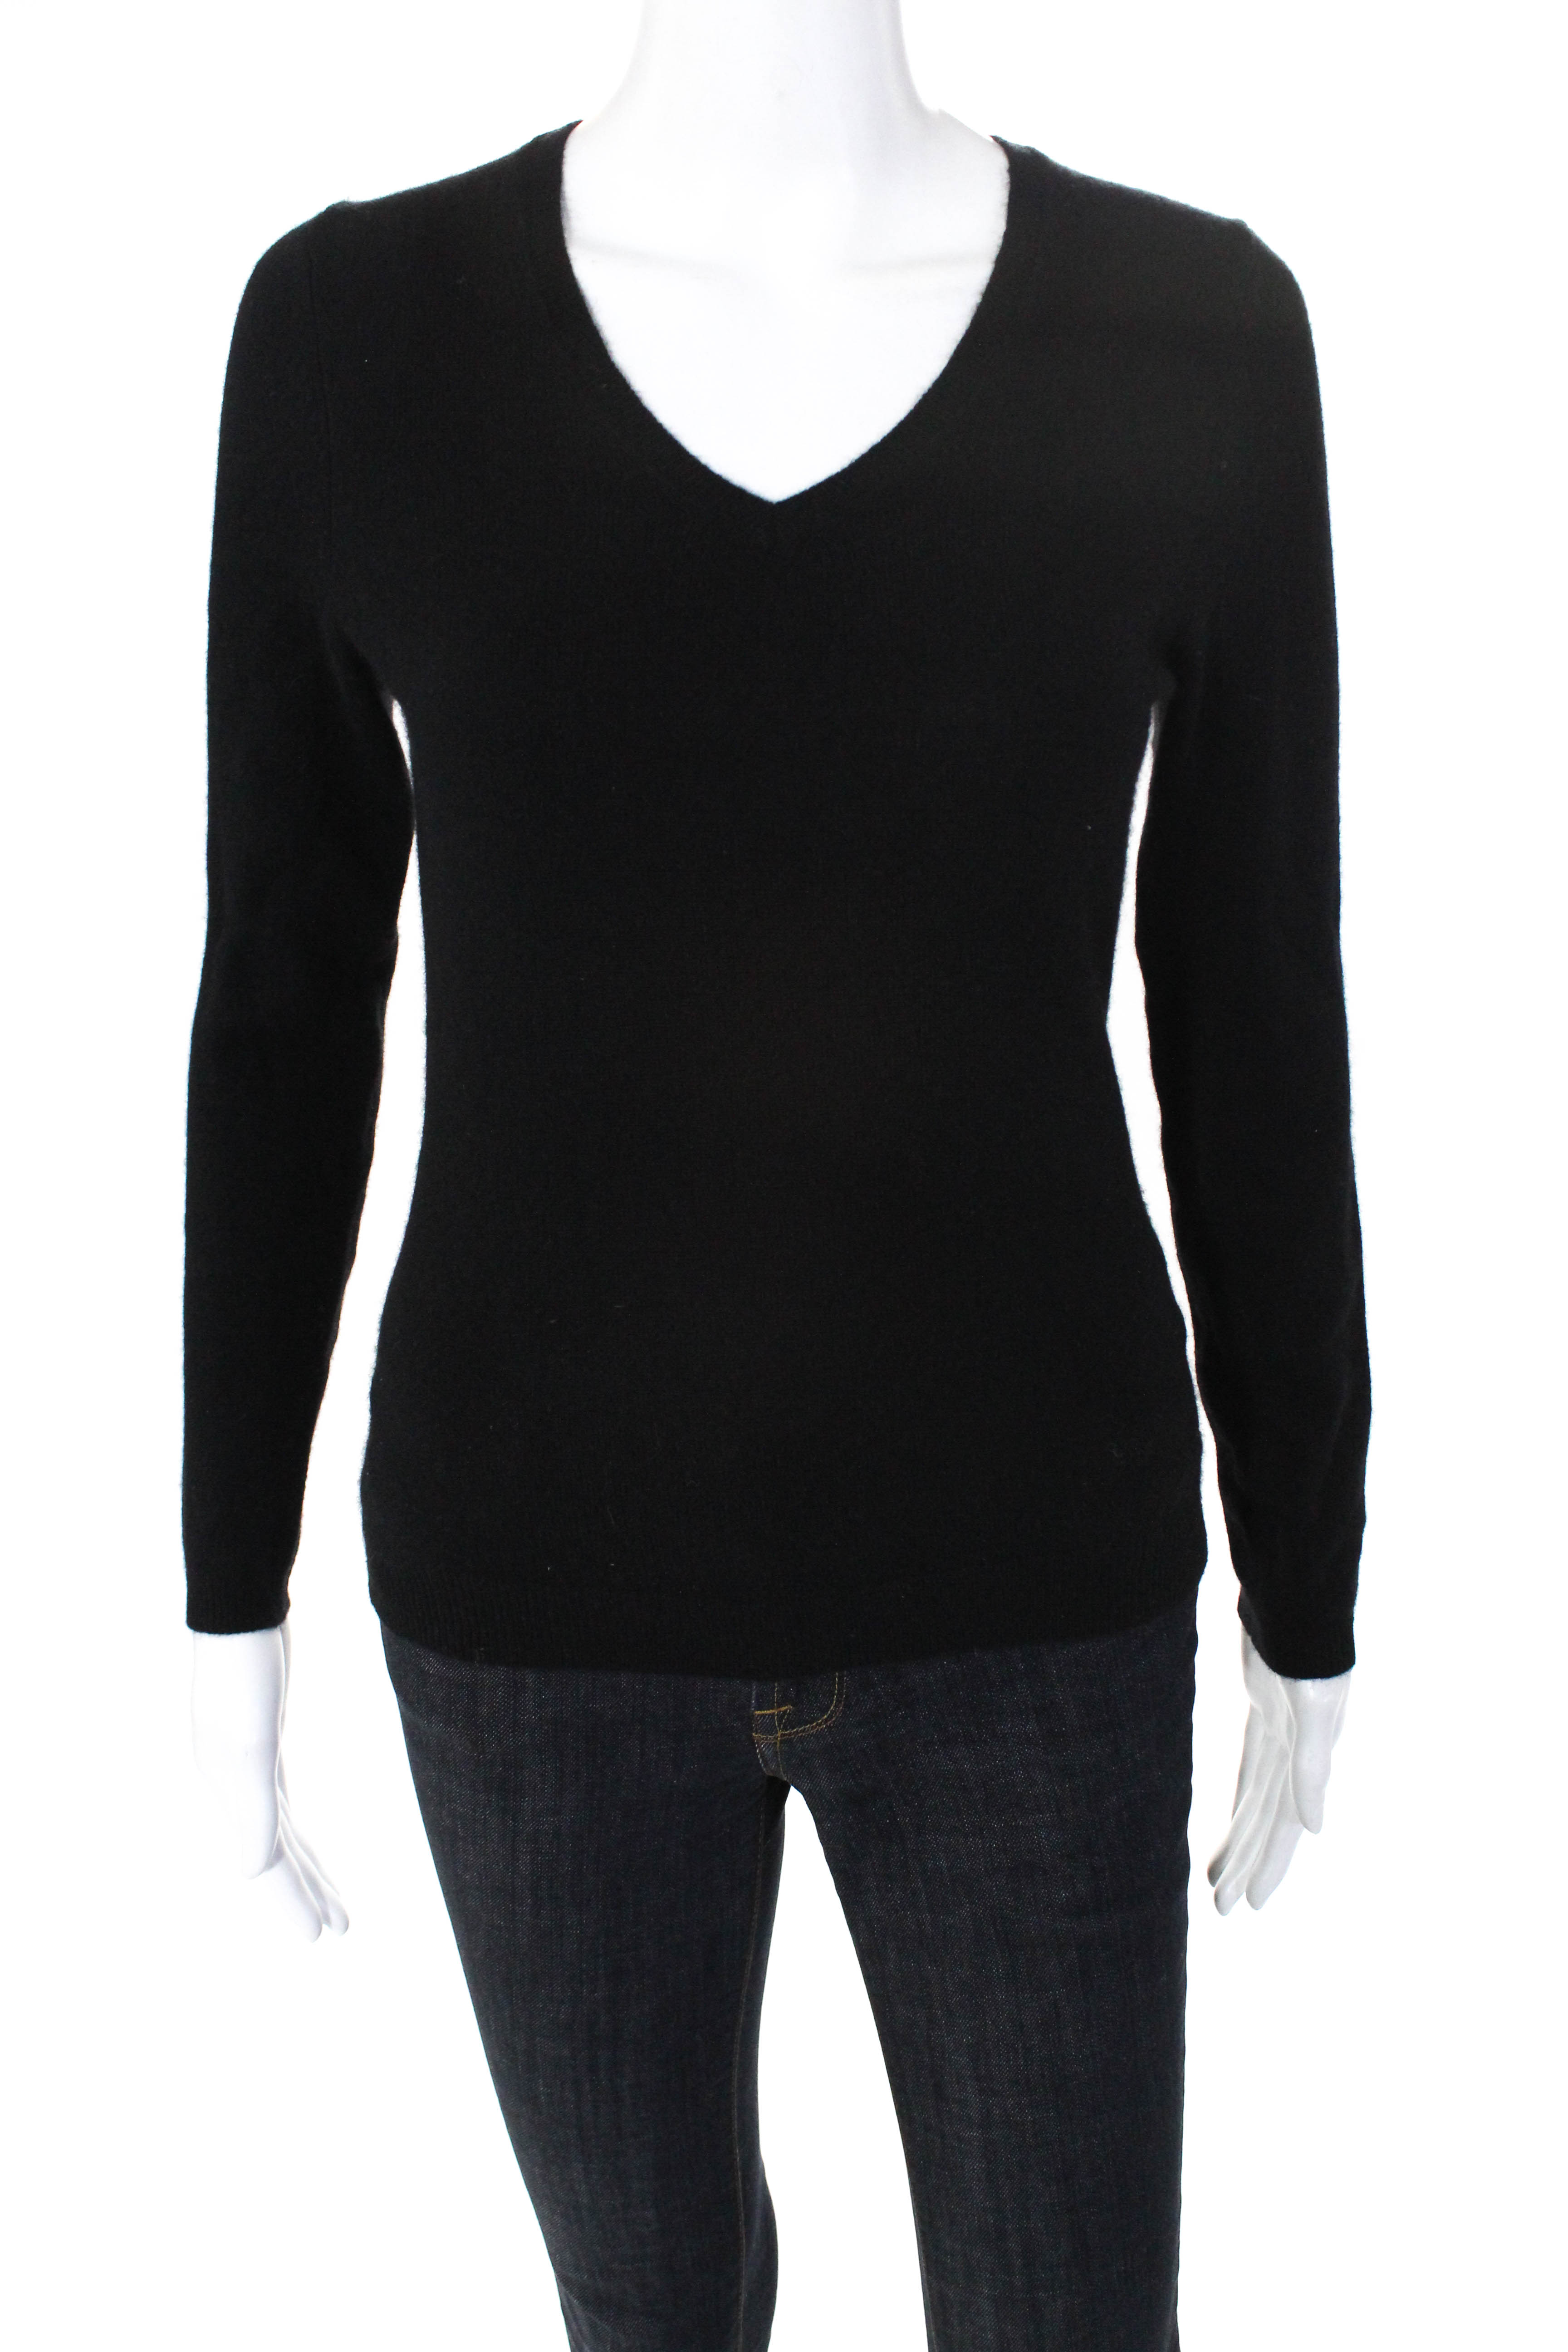 e67c3f886 Details about C by Bloomingdales Womens Long Sleeve Cashmere V-Neck Sweater  Black Size Small